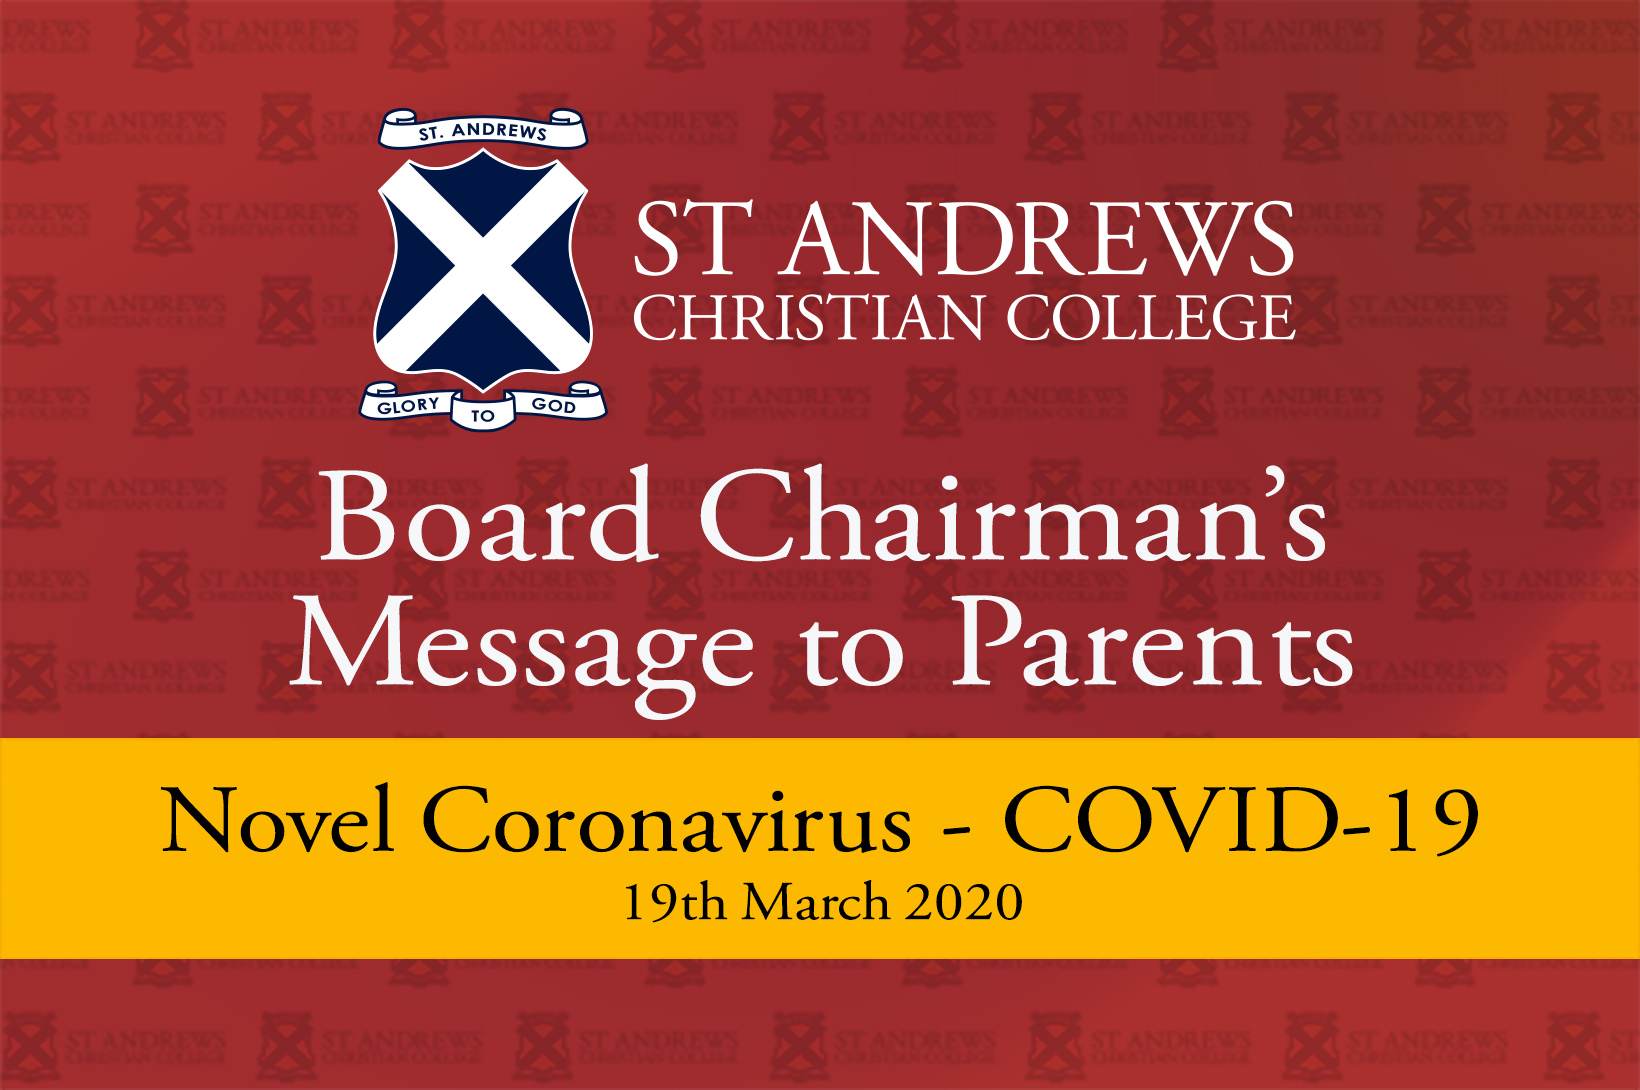 Board Chairman's Message